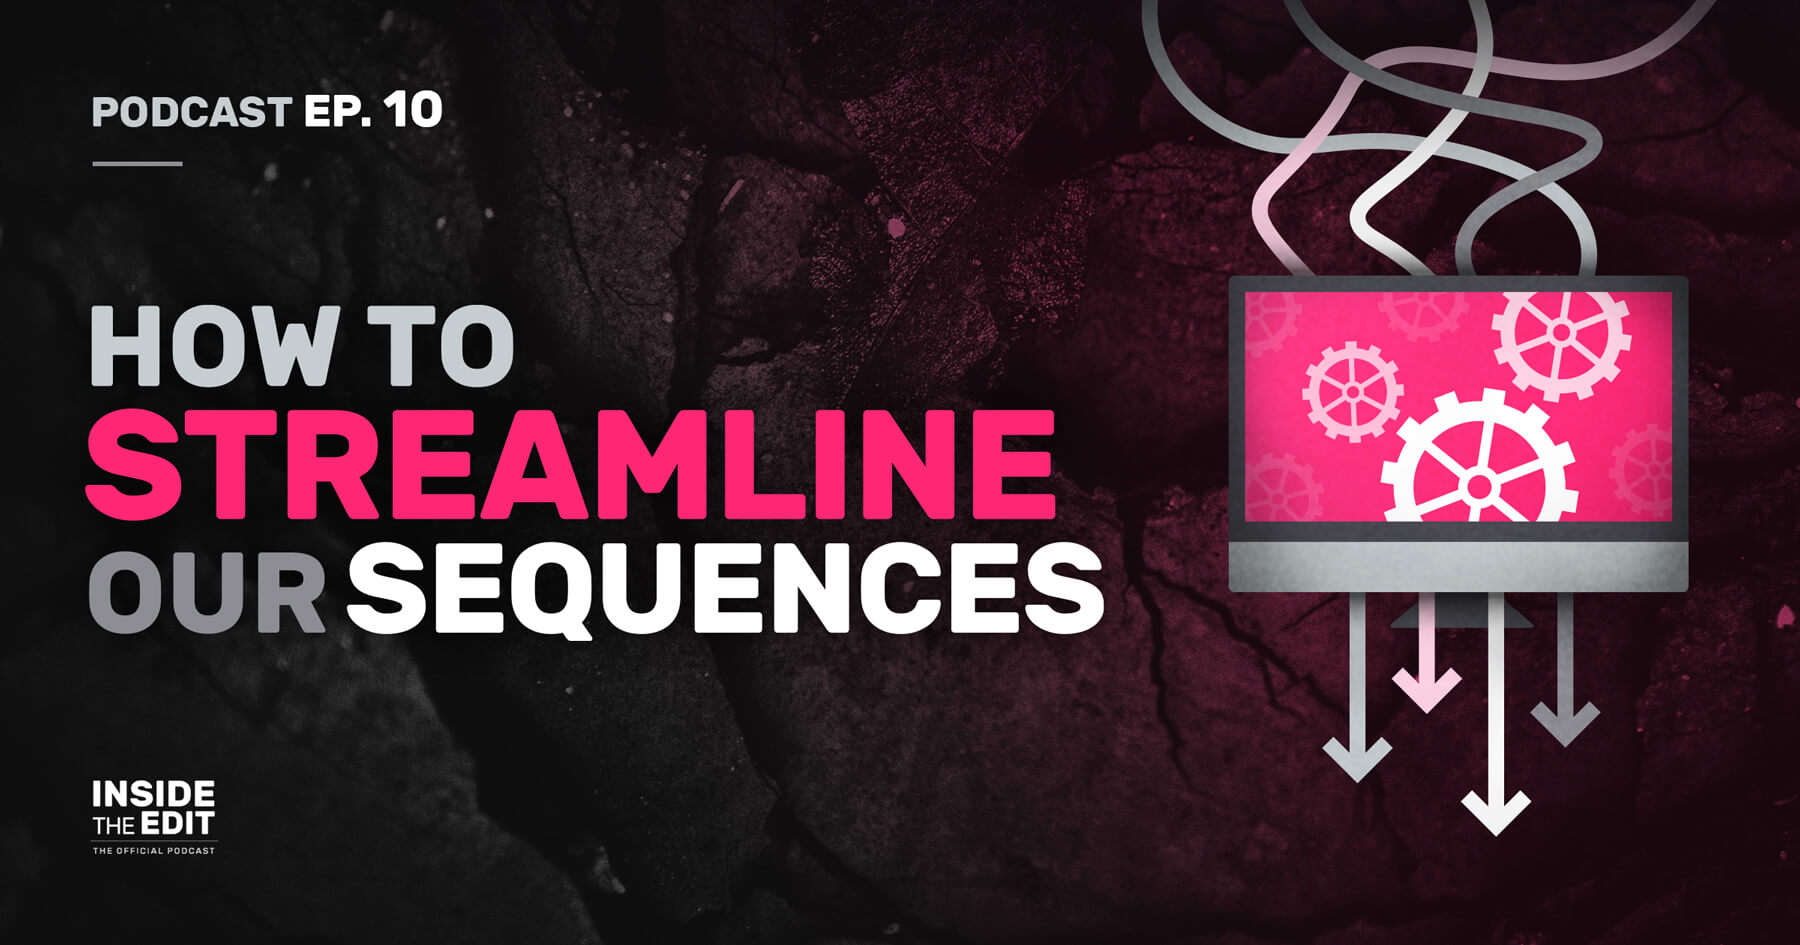 How to Streamline Our Sequences